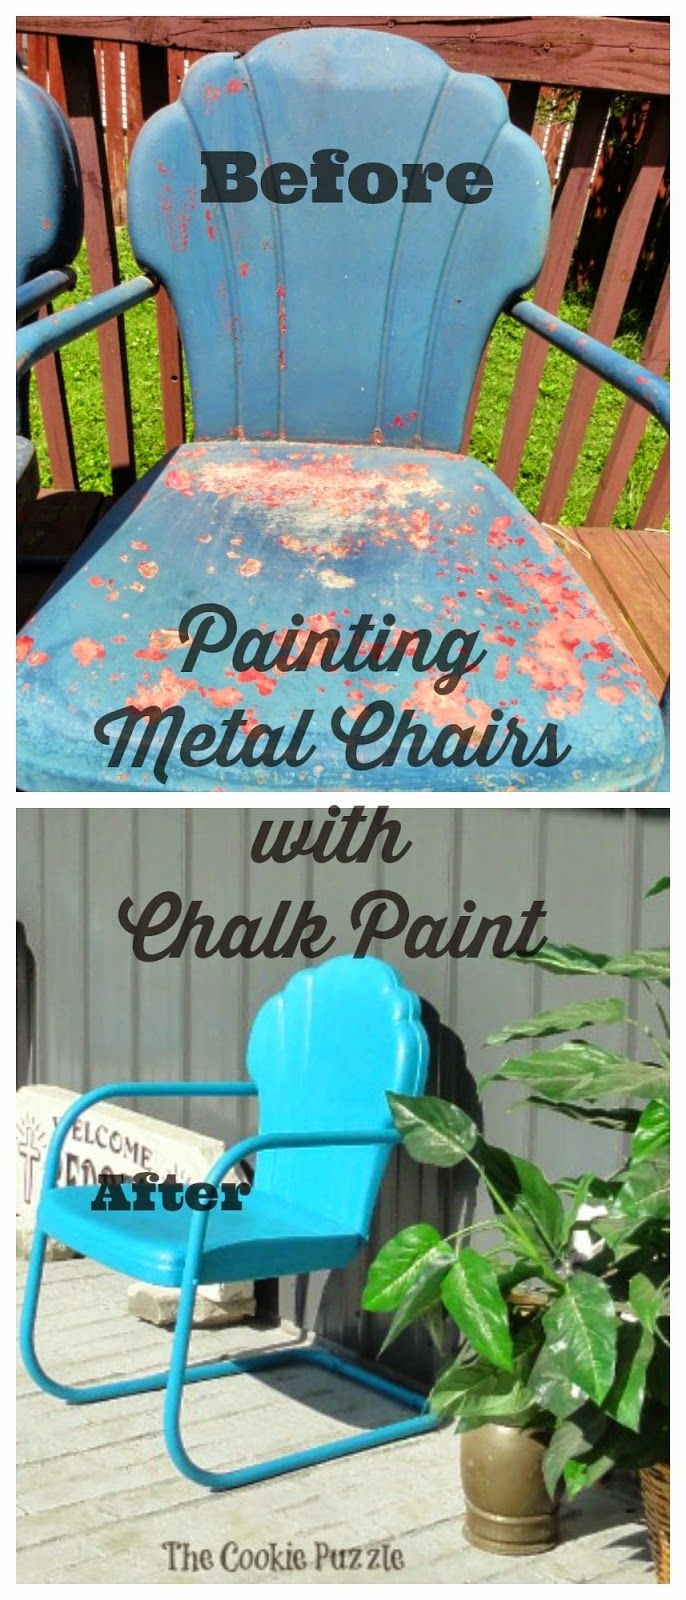 Painting Metal Chairs with Chalk Paint via The Cookie Puzzle